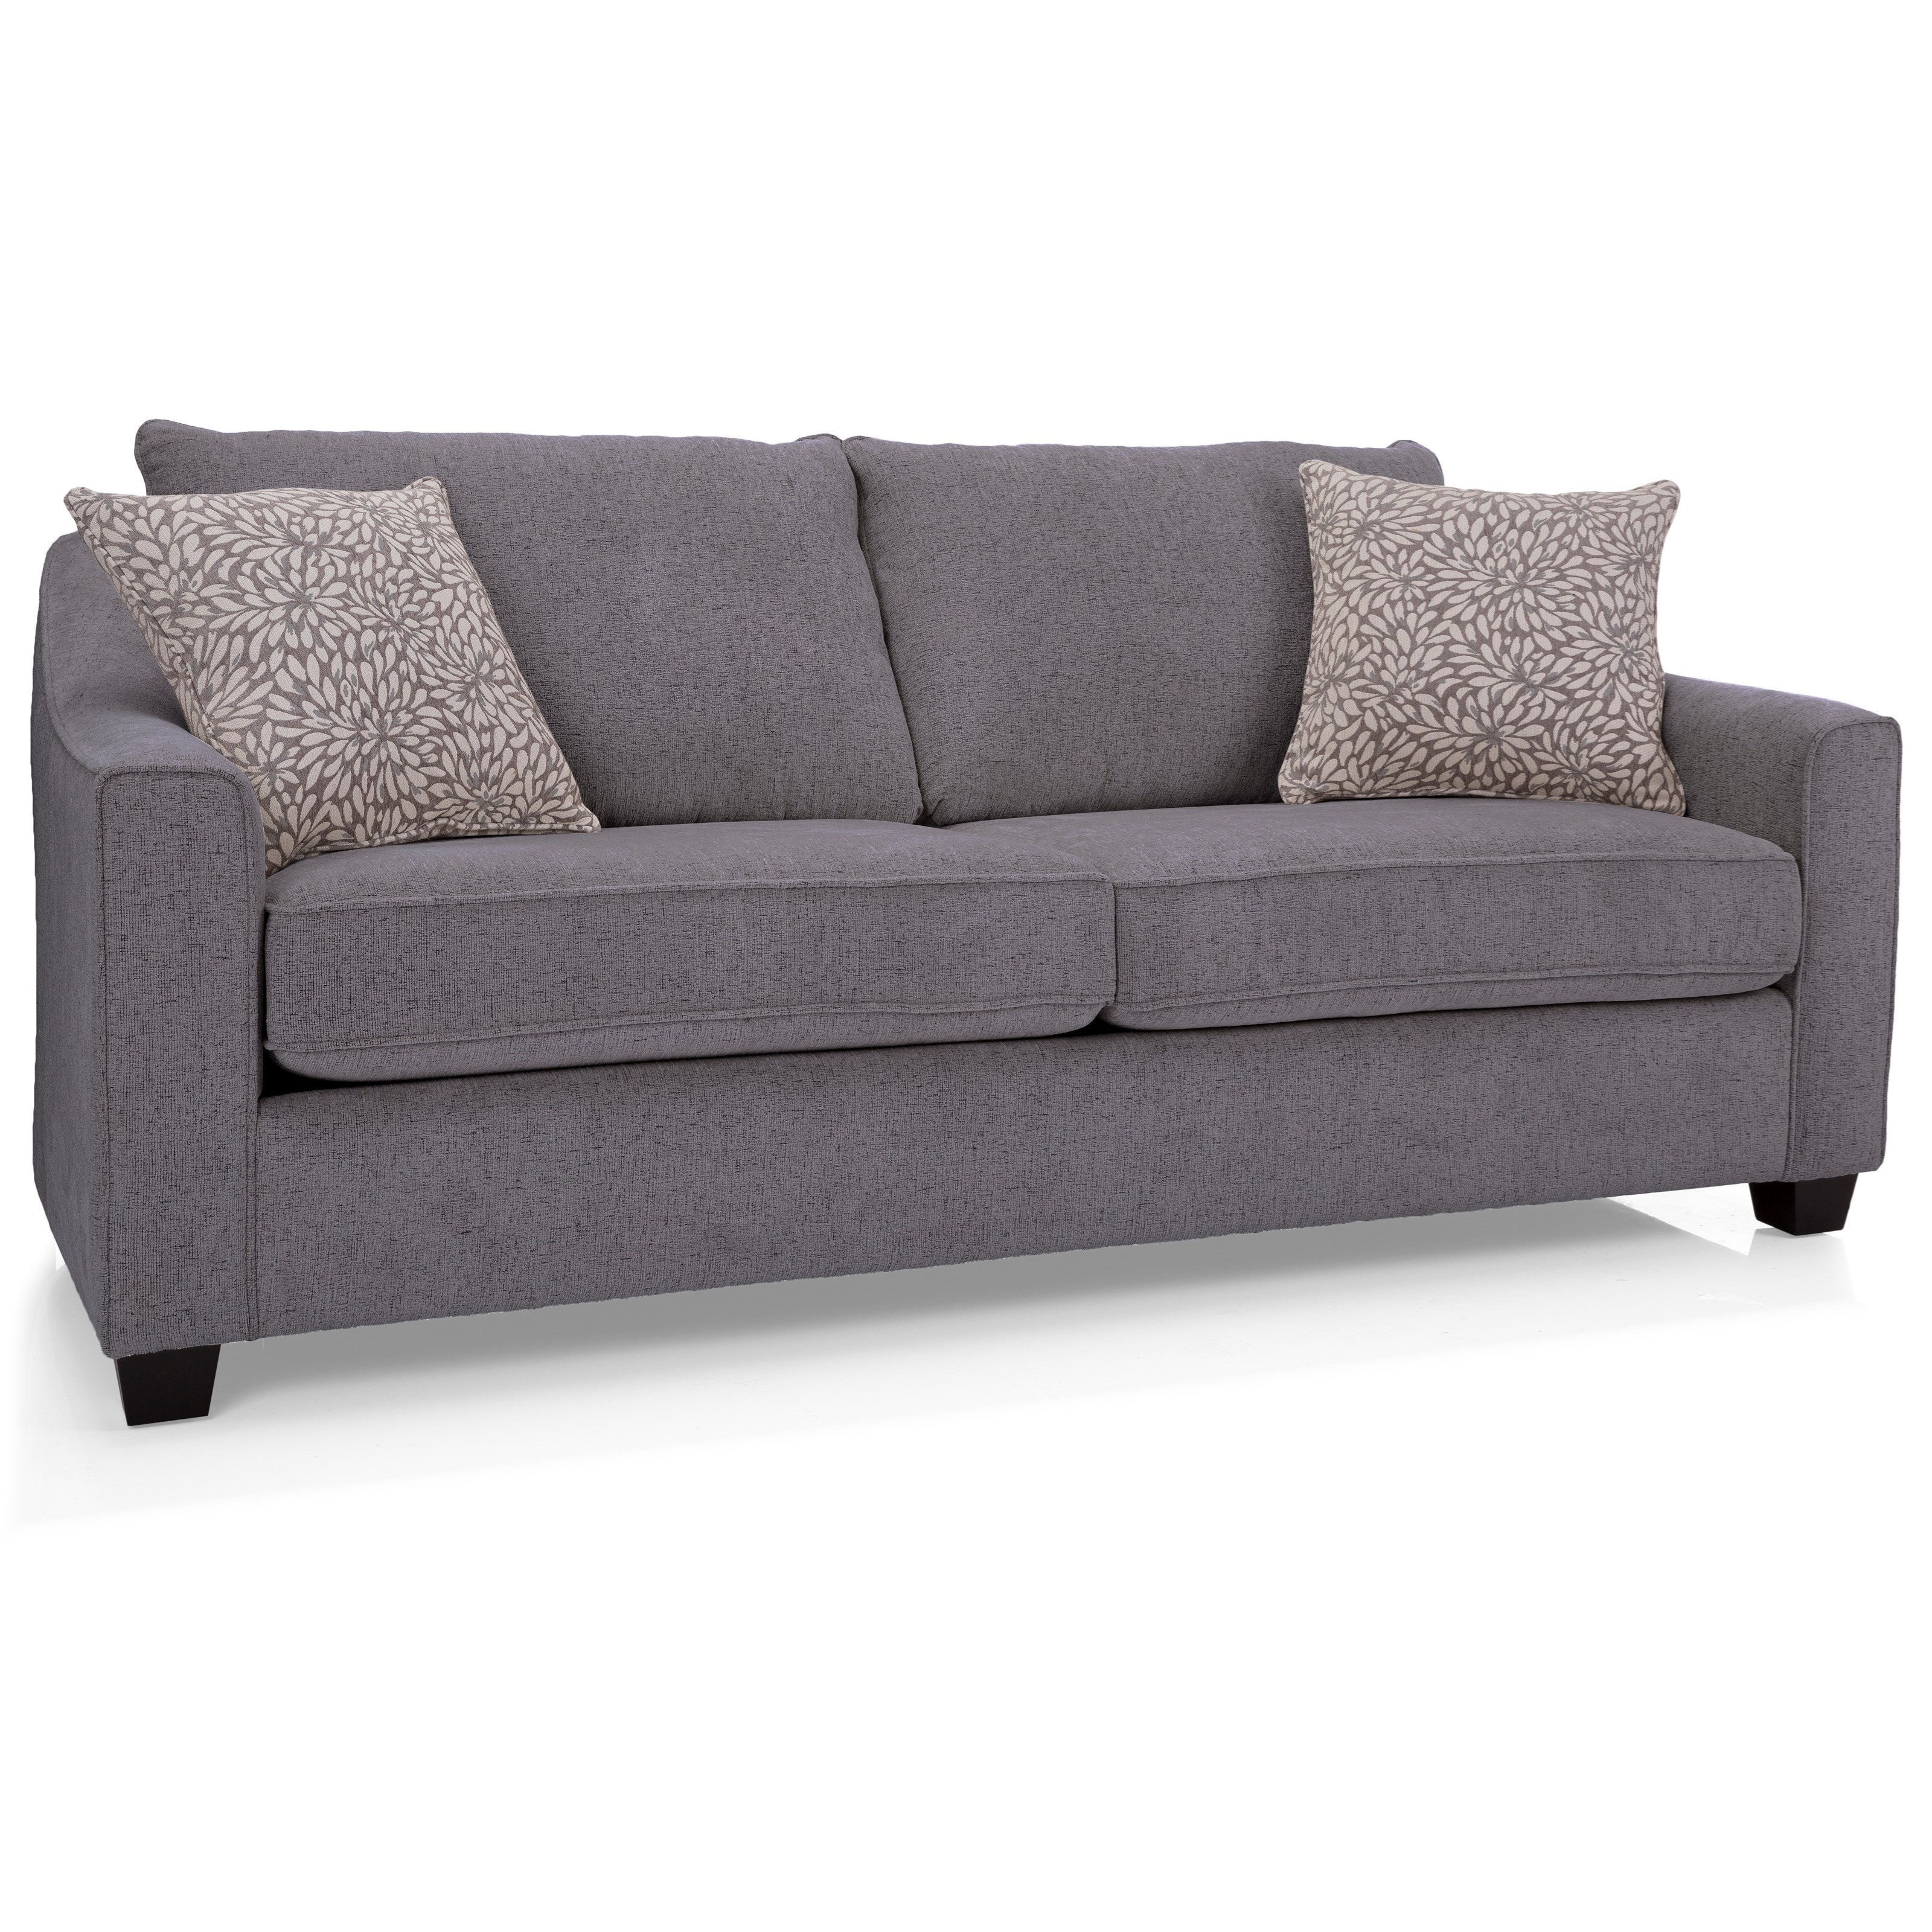 2981 Sofa by Decor-Rest at Upper Room Home Furnishings